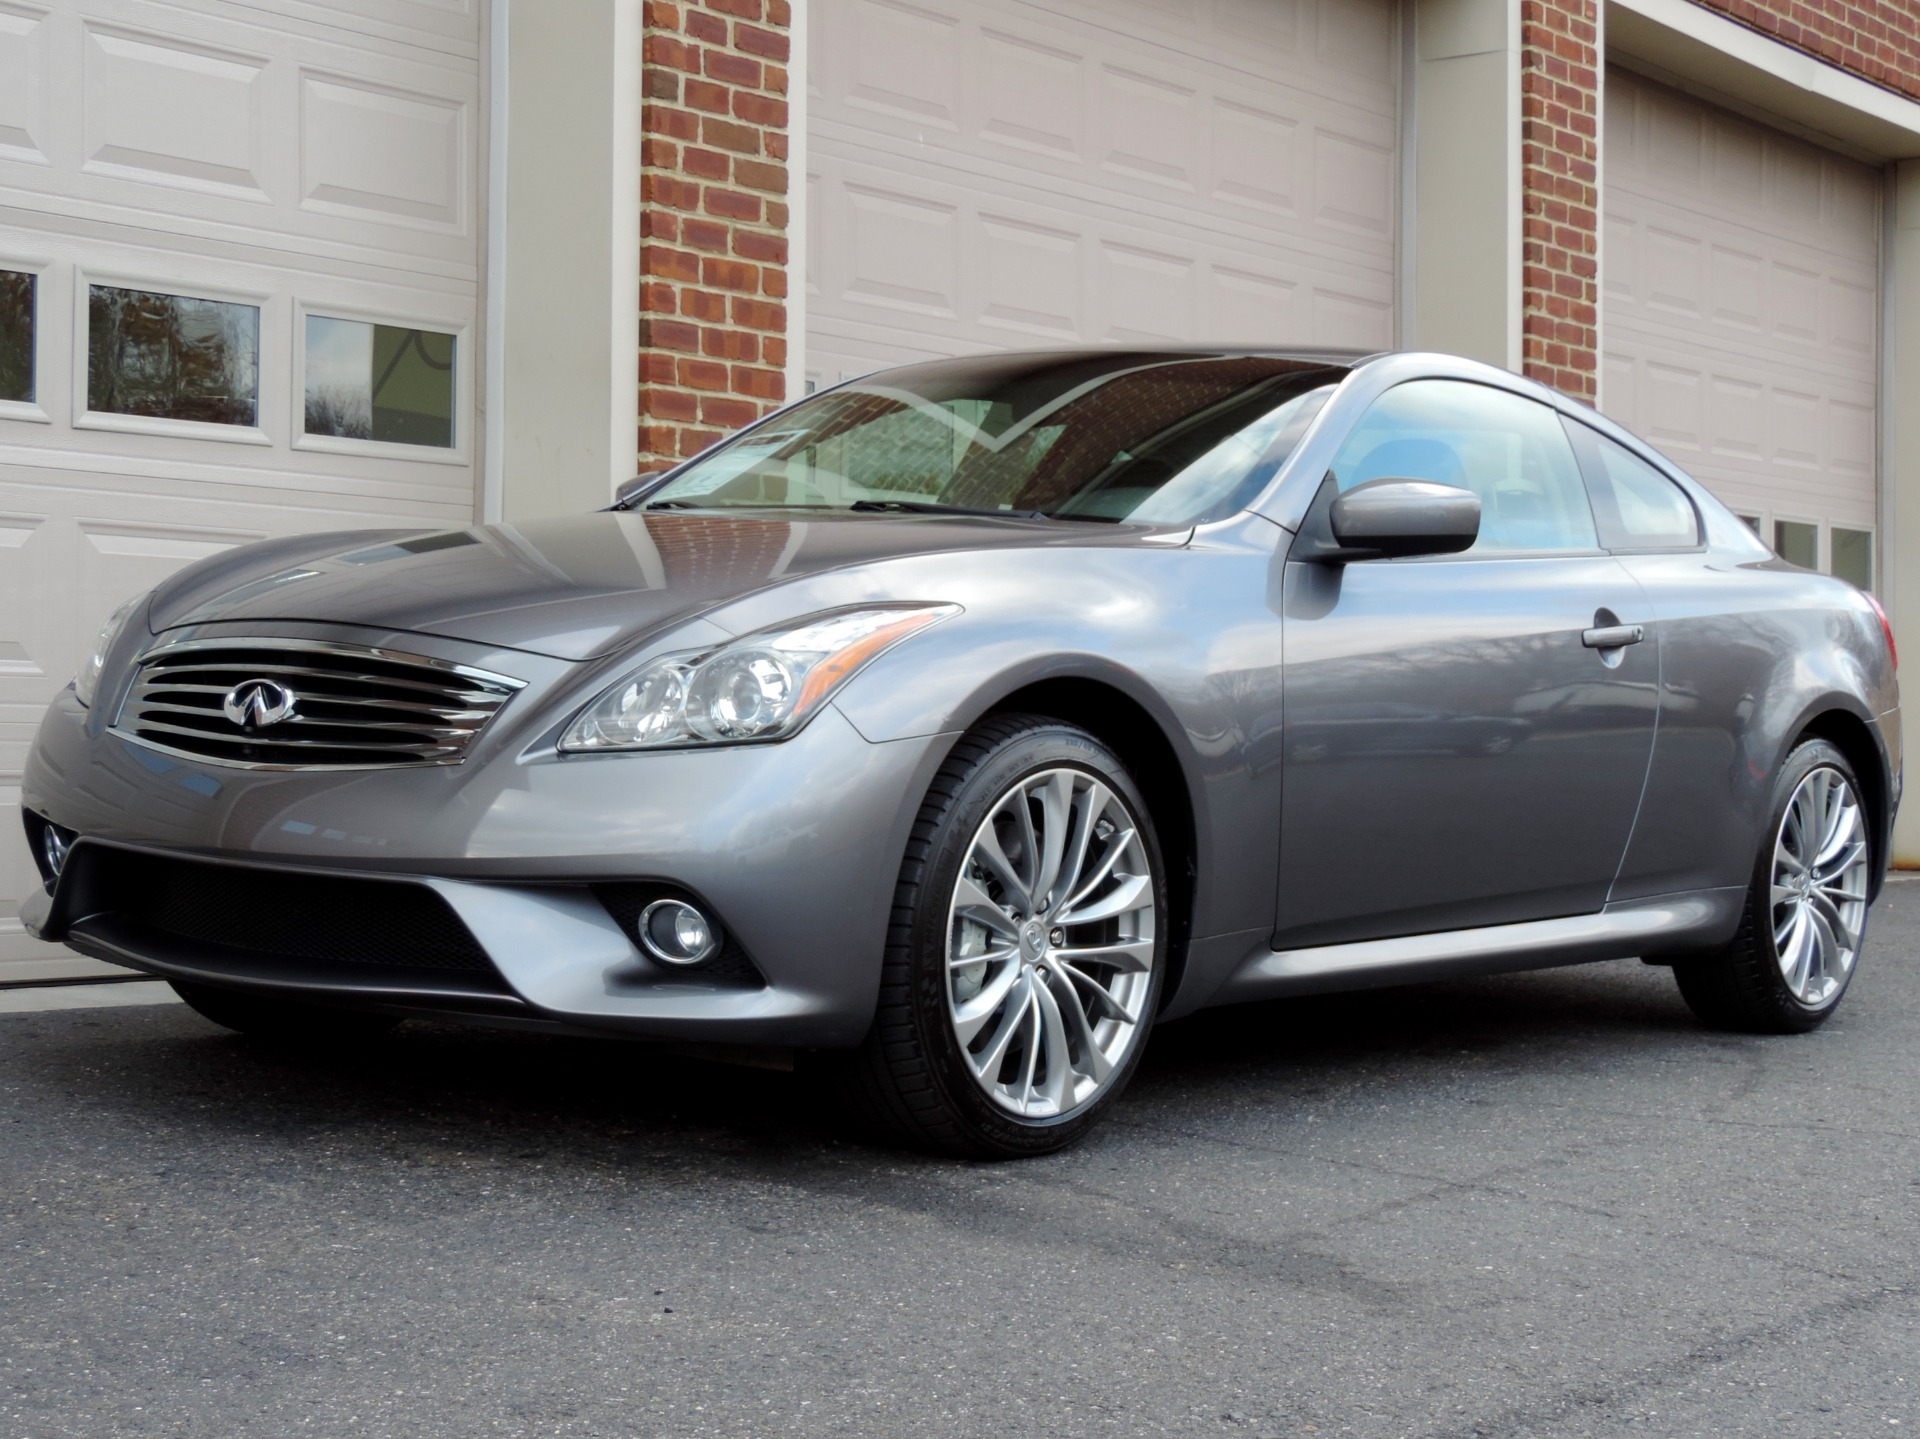 2012 Infiniti G37 Coupe X Awd Sport Pkg Stock 472930 For Manual Guide